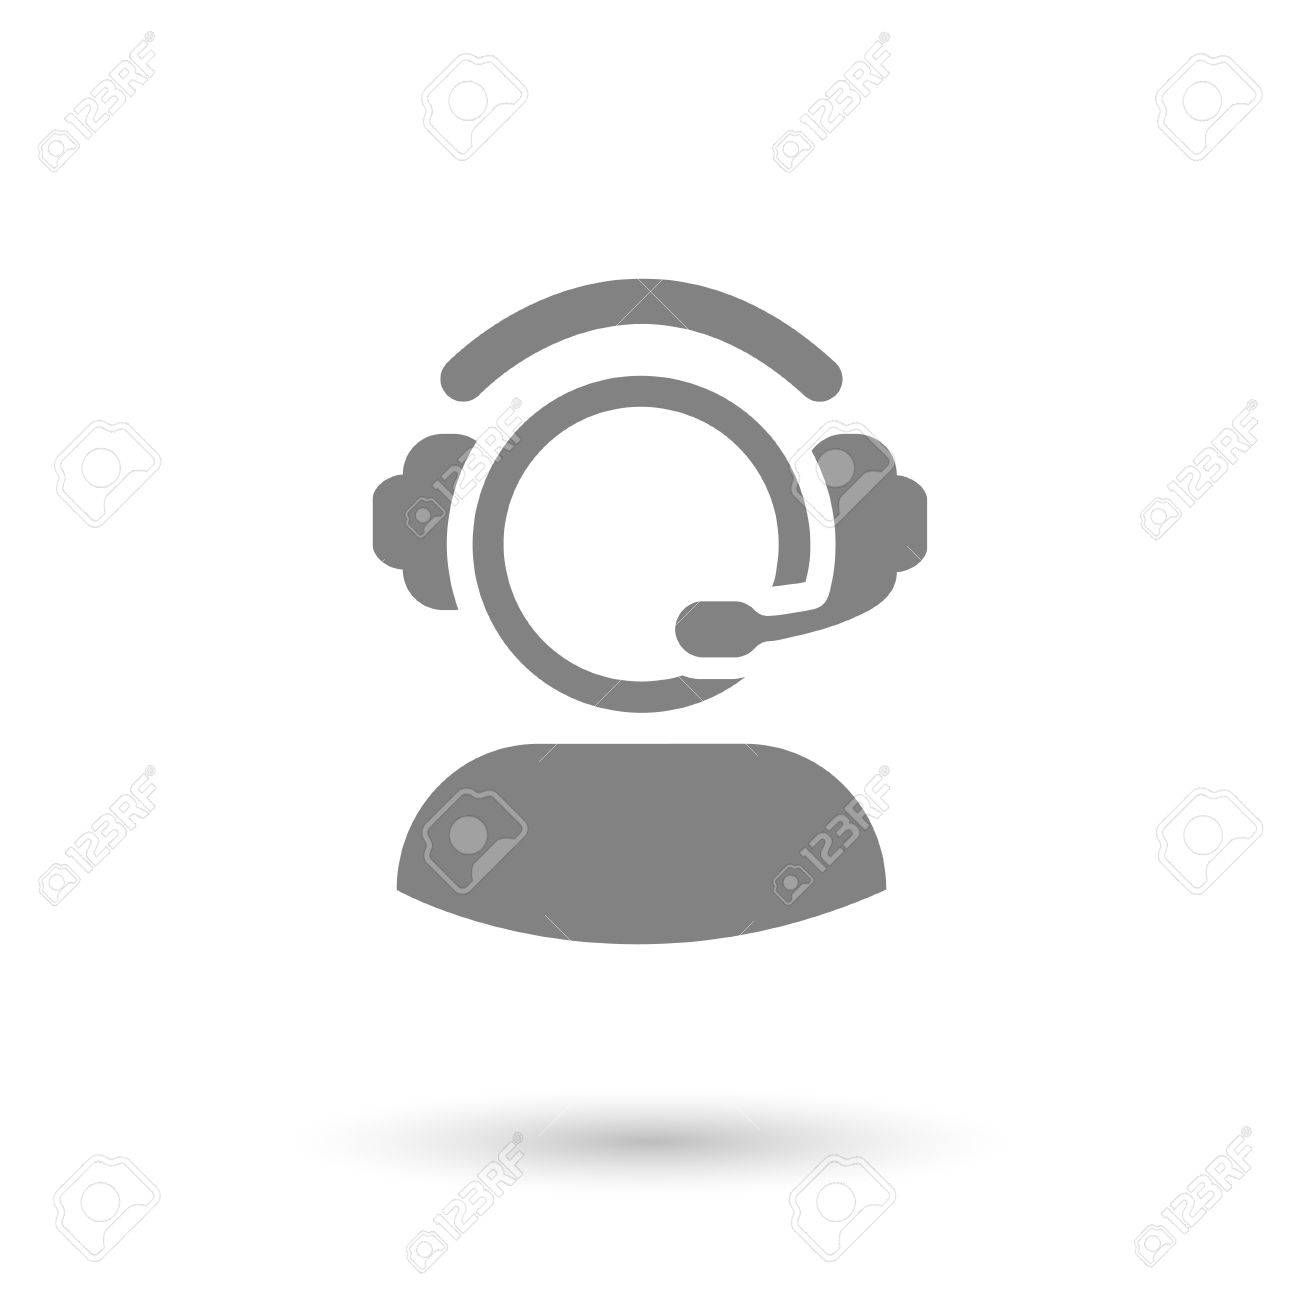 flat call center gray icon isolated with shadow - 40621222